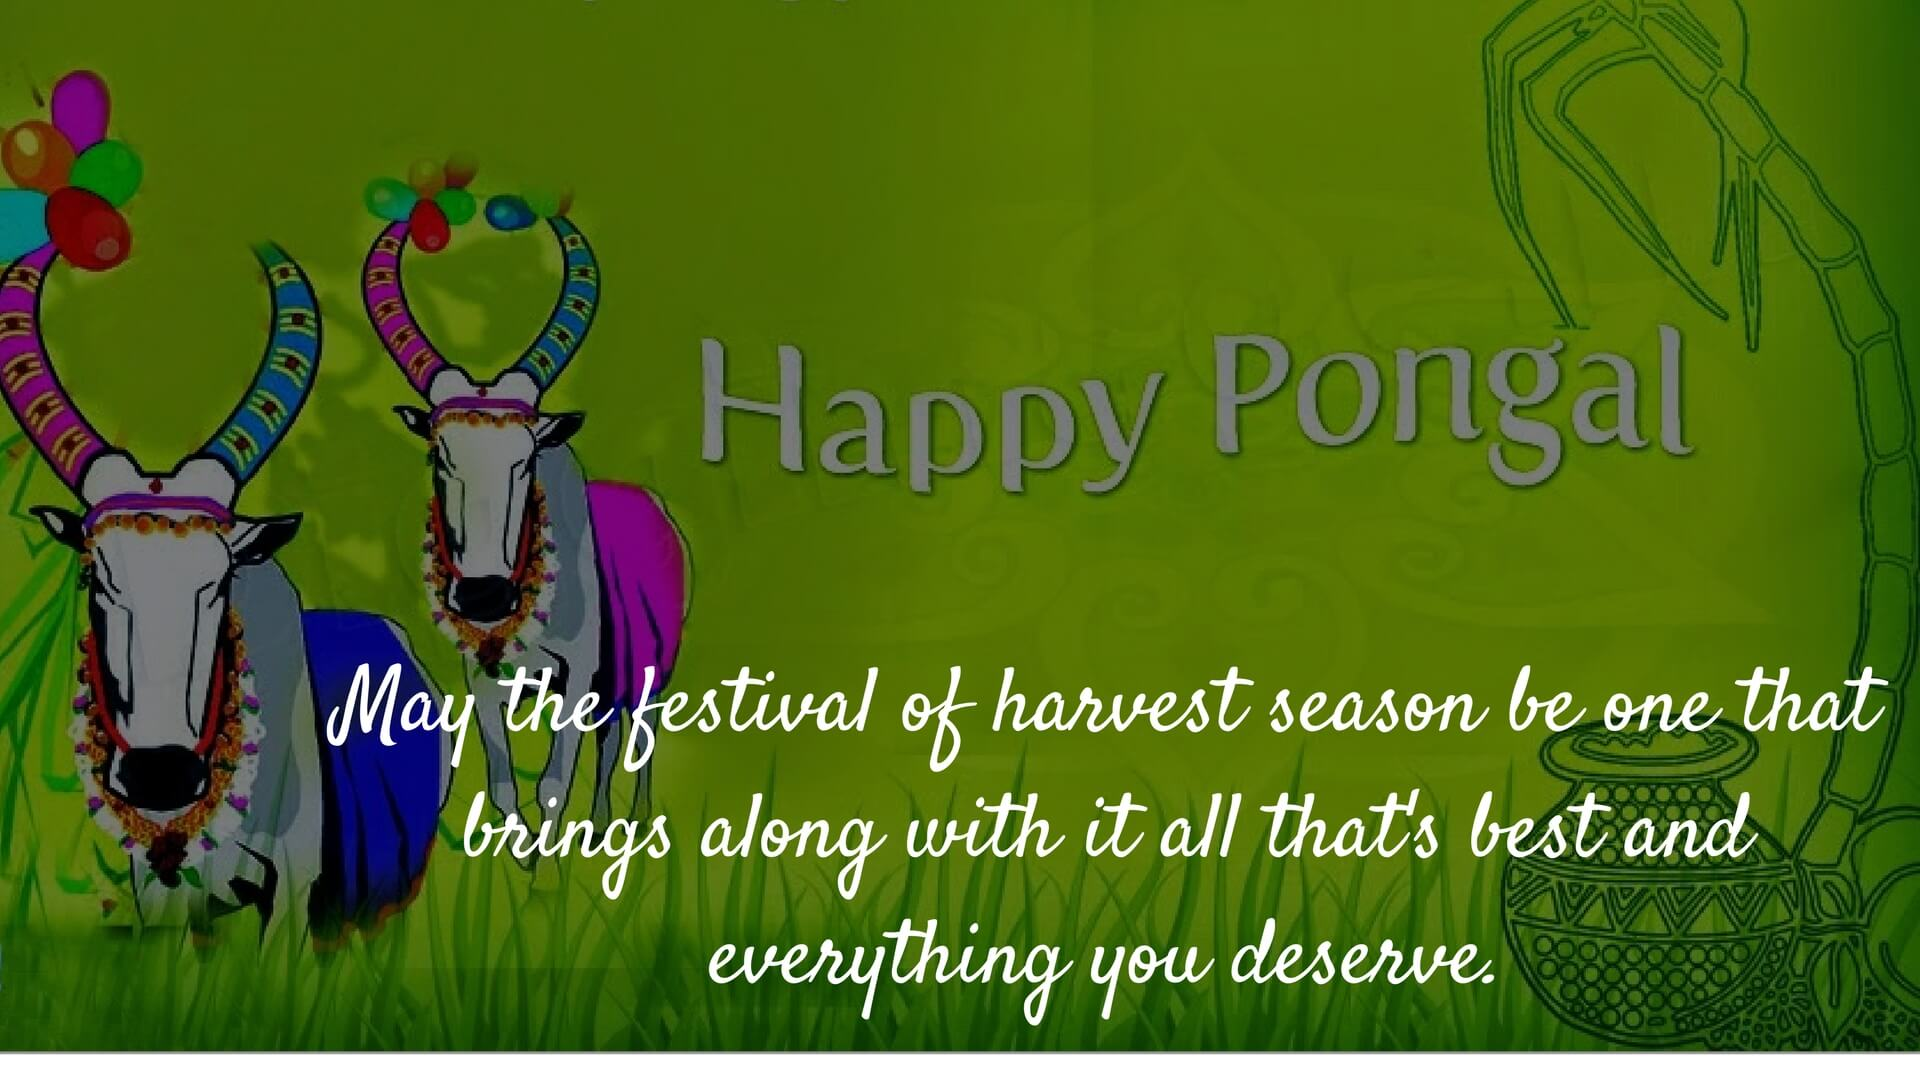 Happy pongal festival wishes 2018 messages greetings images happy pongal wishes images kristyandbryce Images